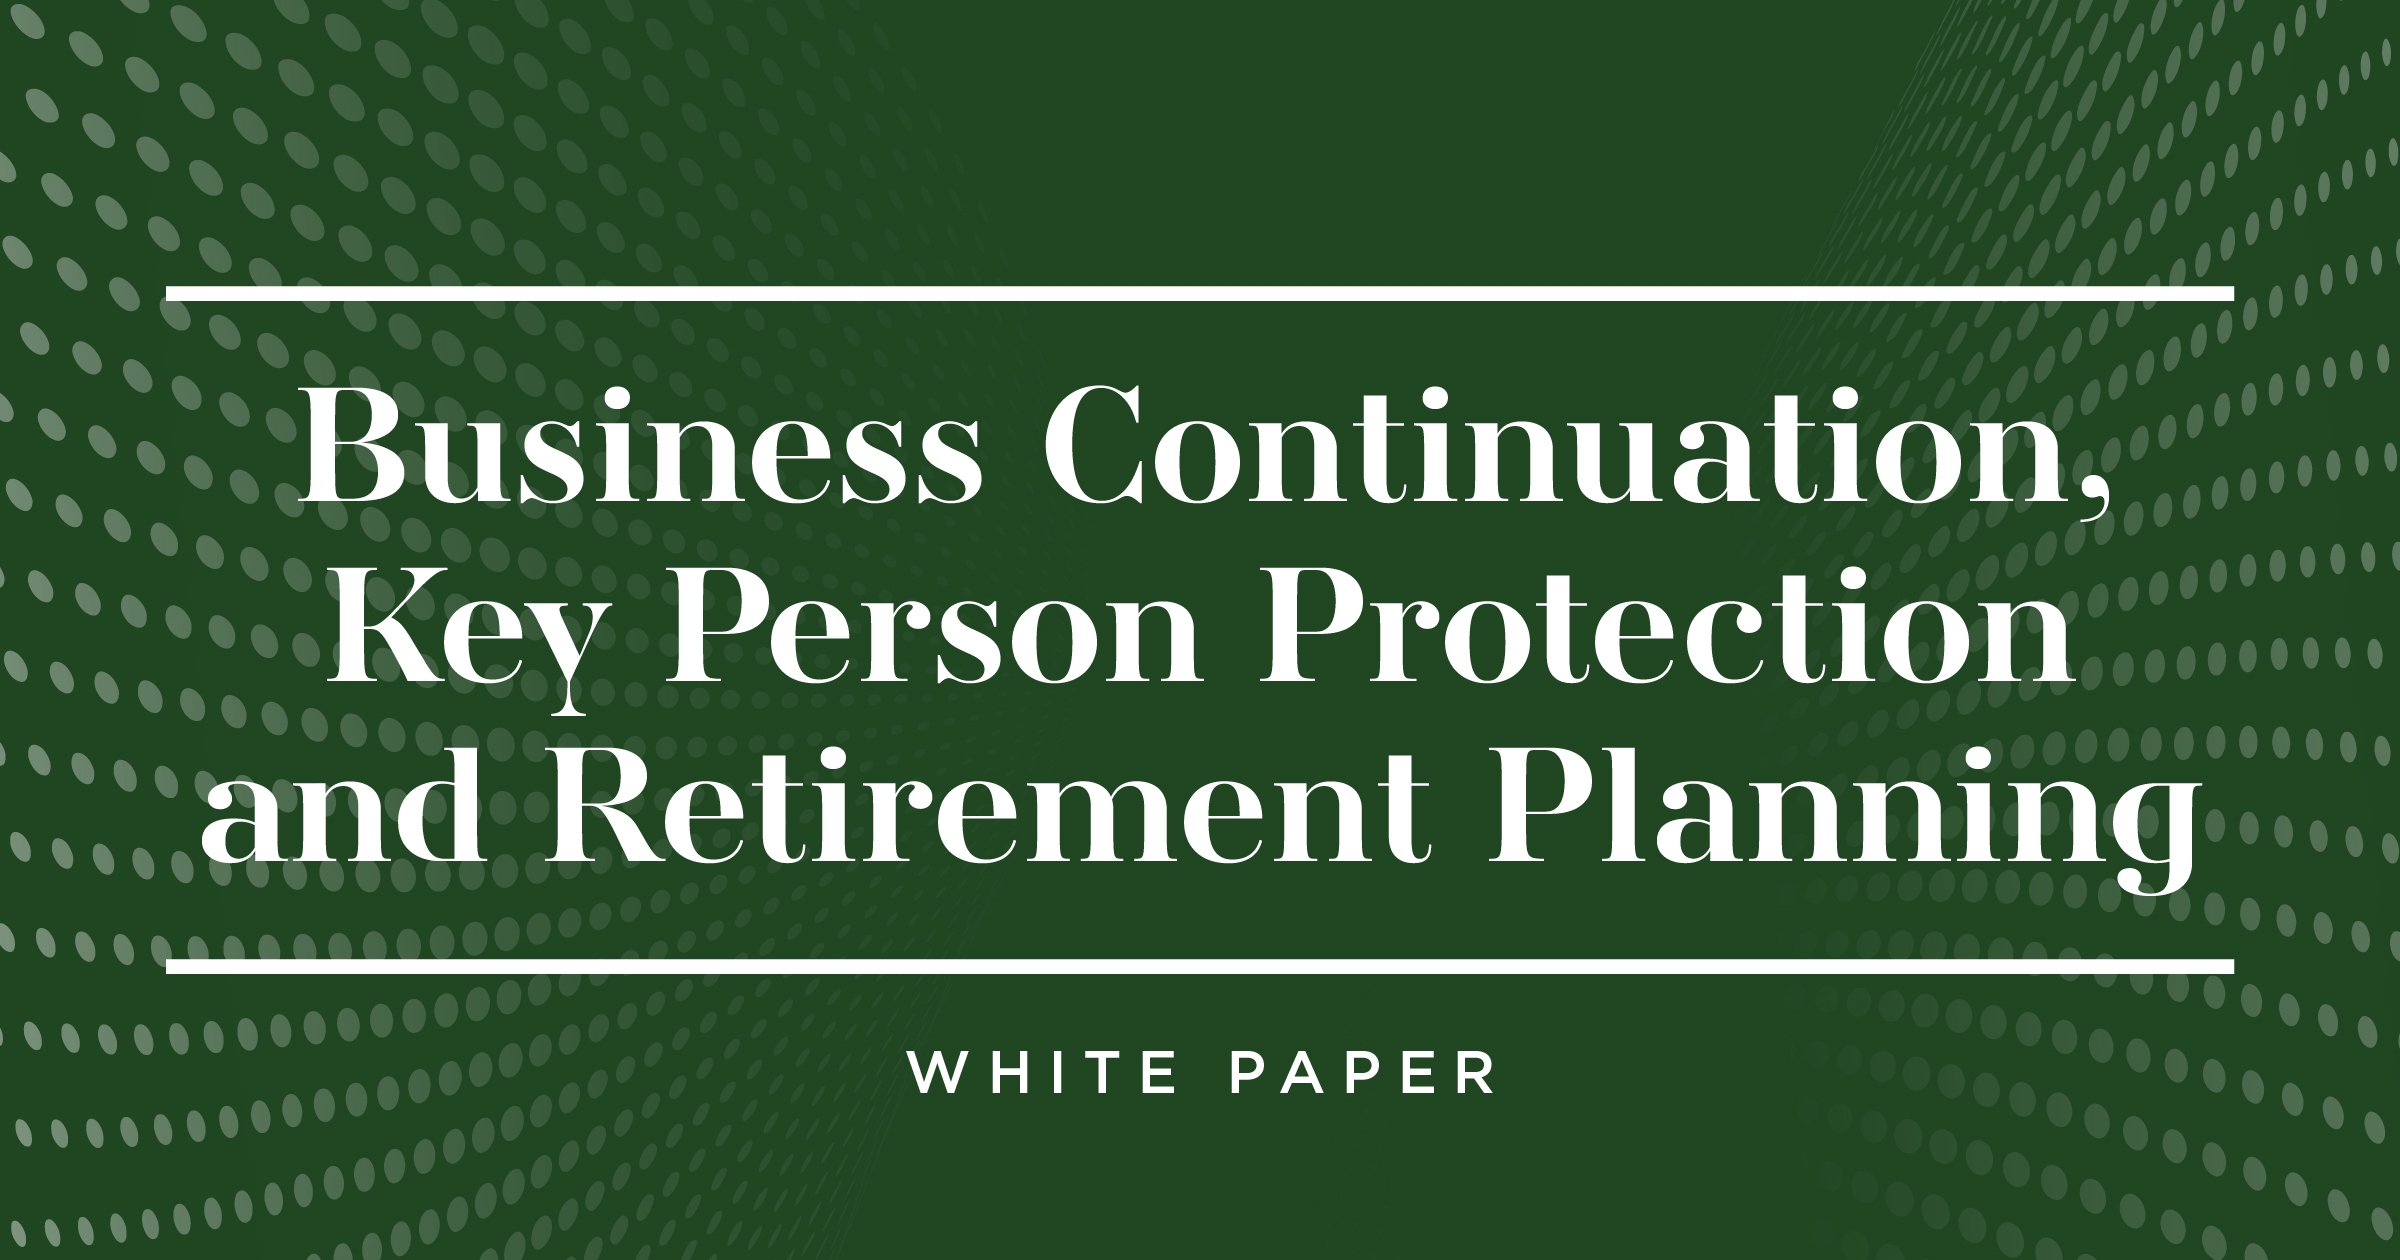 Business Continuation, Key Person Protection and Retirement Planning  White Paper